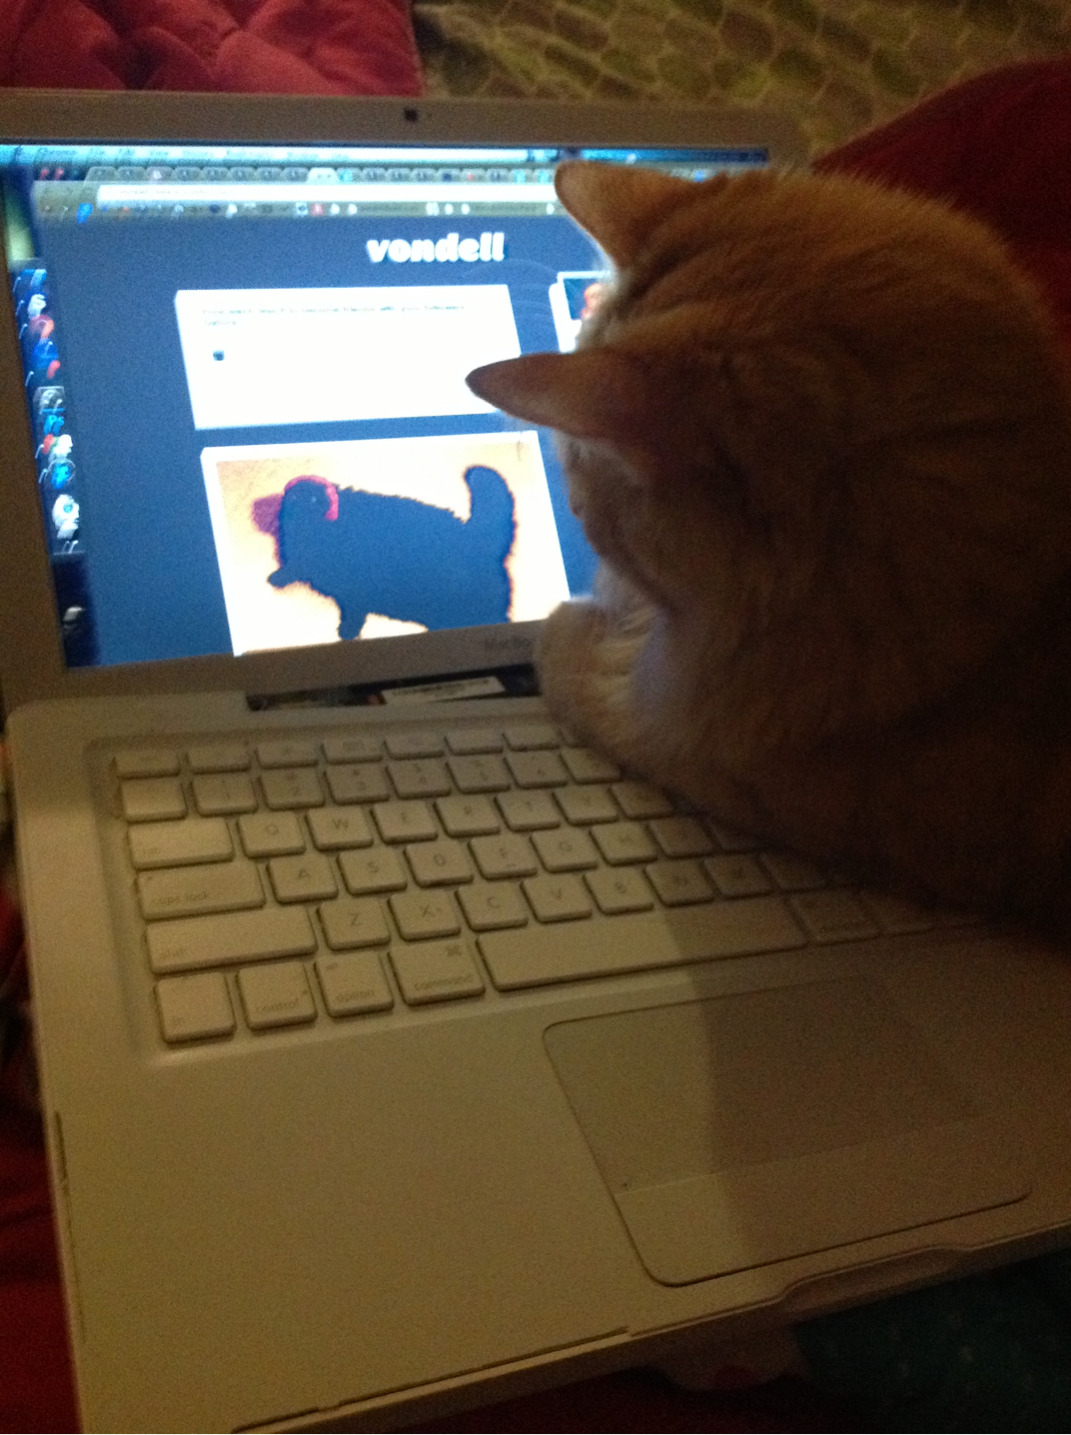 my cat won't move and he's just laying on my laptop looking at vondell's blog and purring loudly help